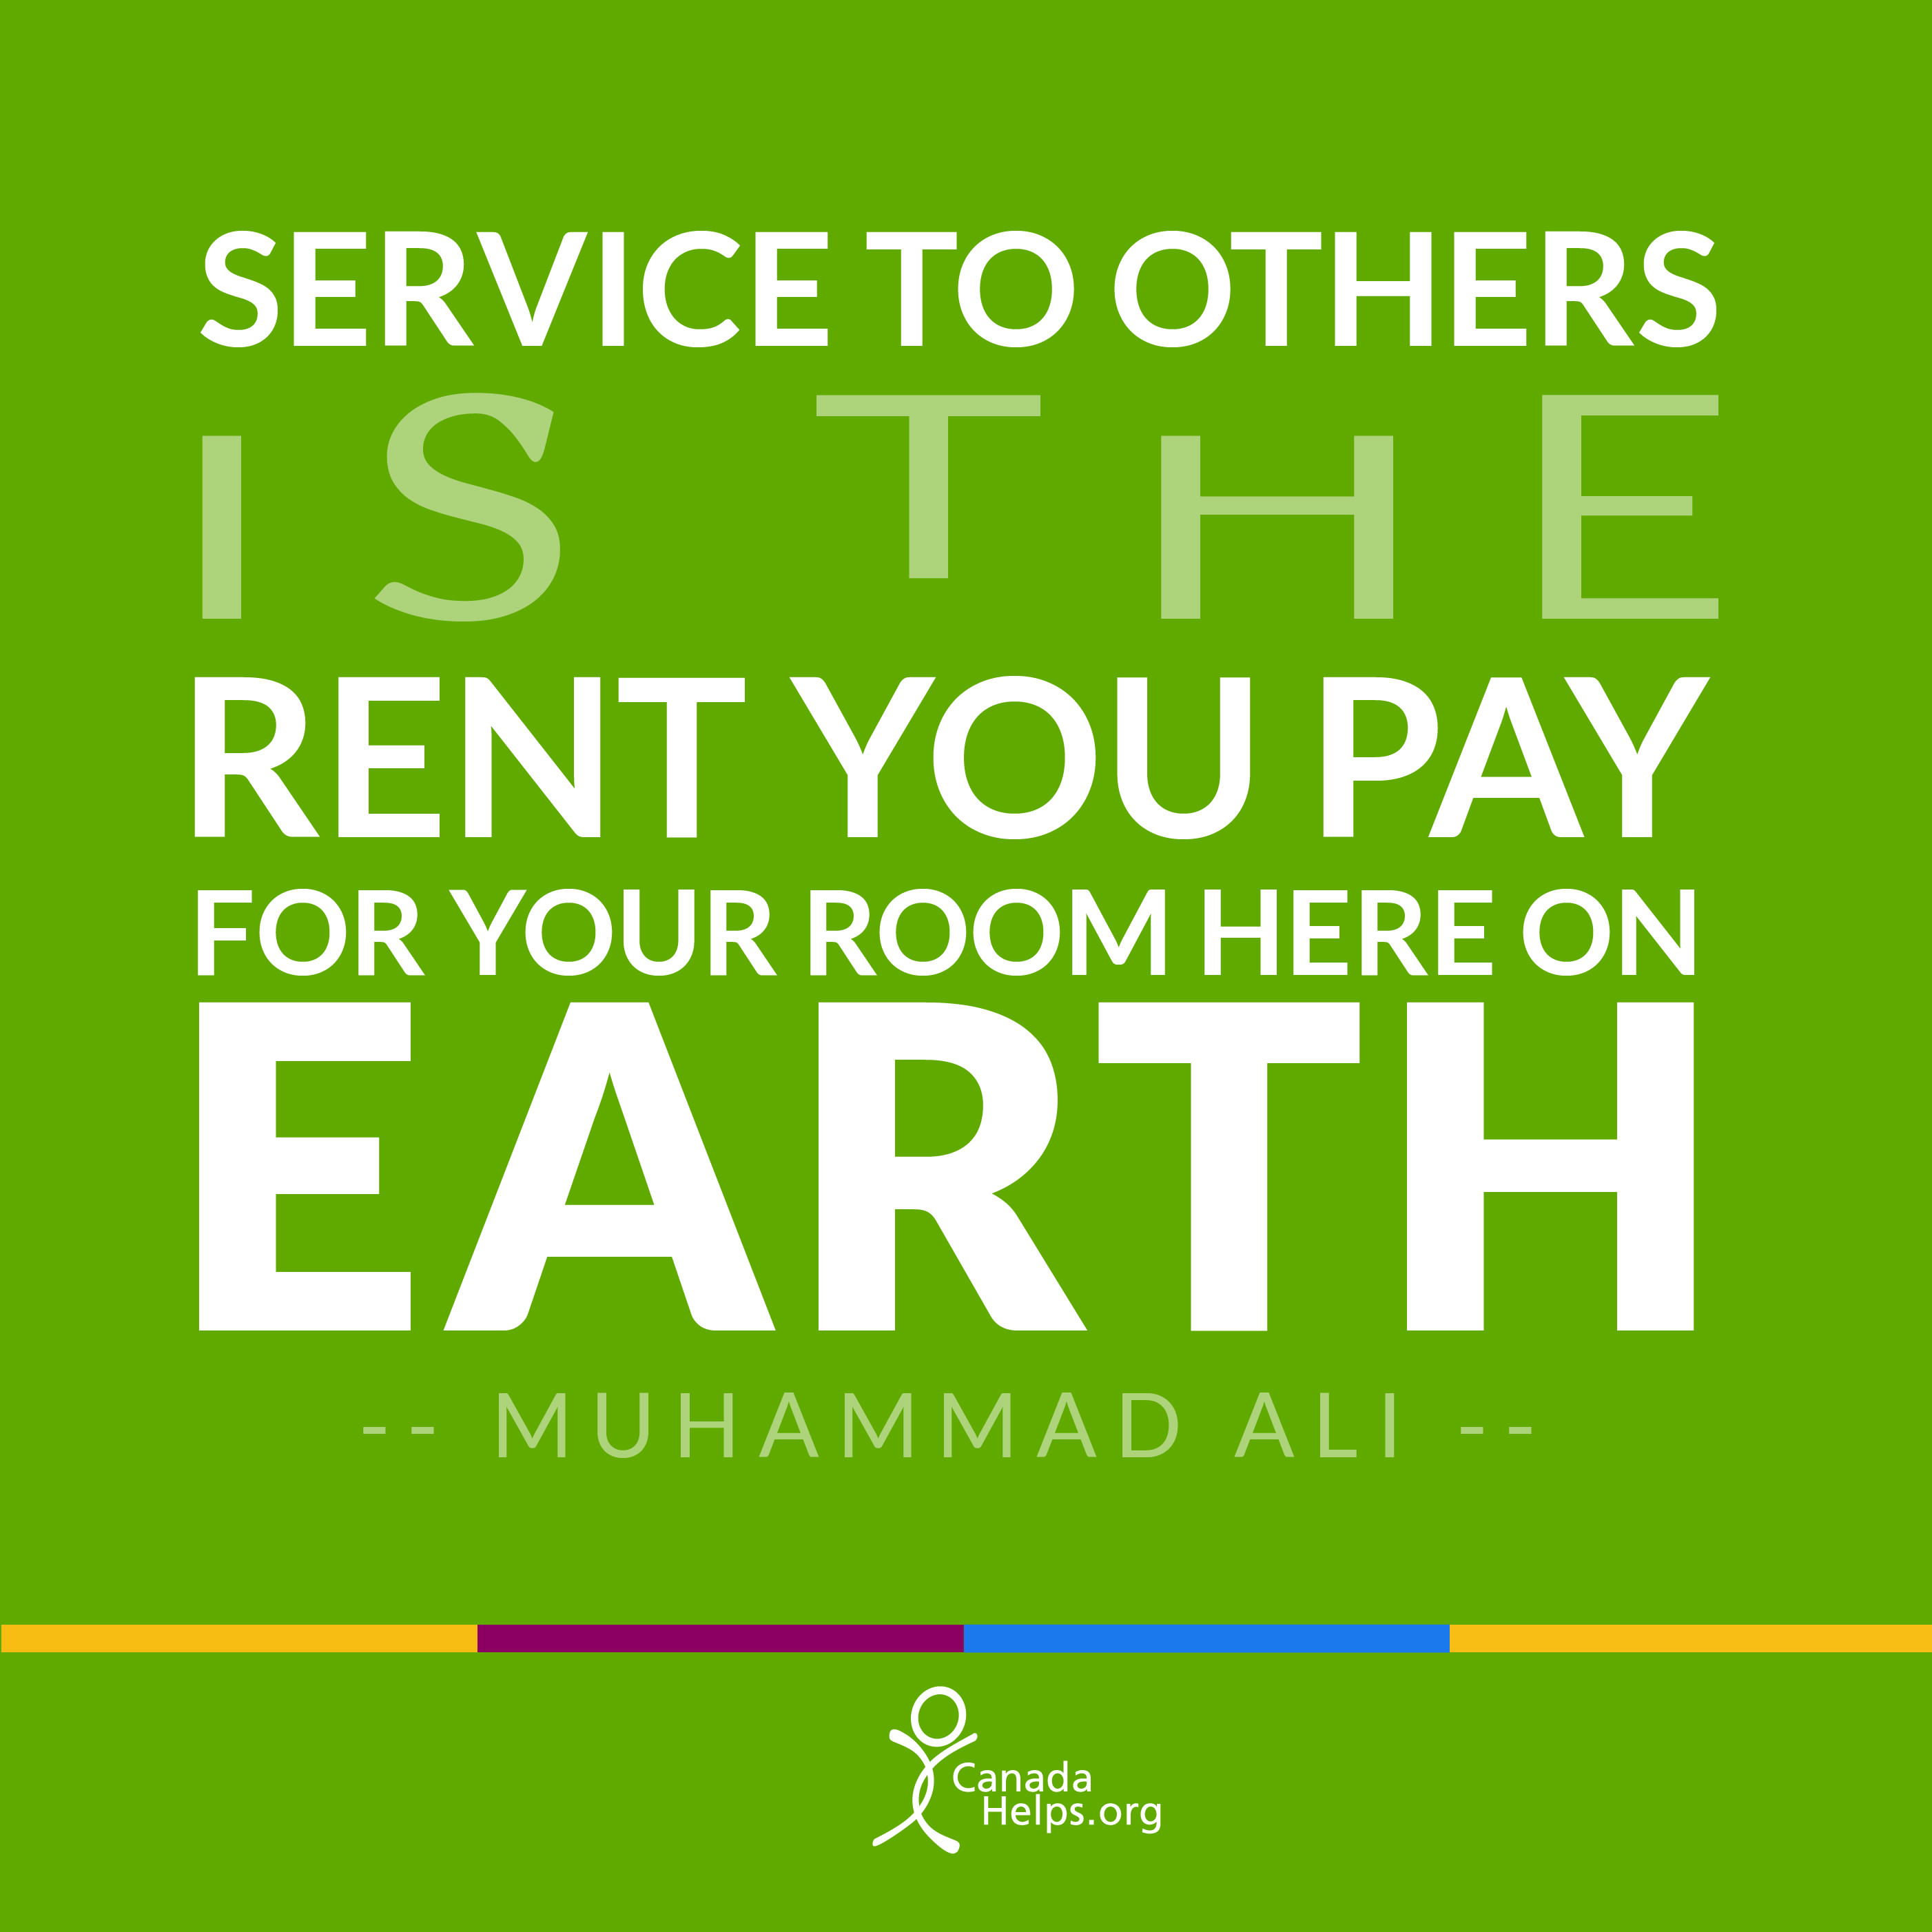 Rent Quotes Service To Others Is The Rent You Pay For Your Room Here On Earth